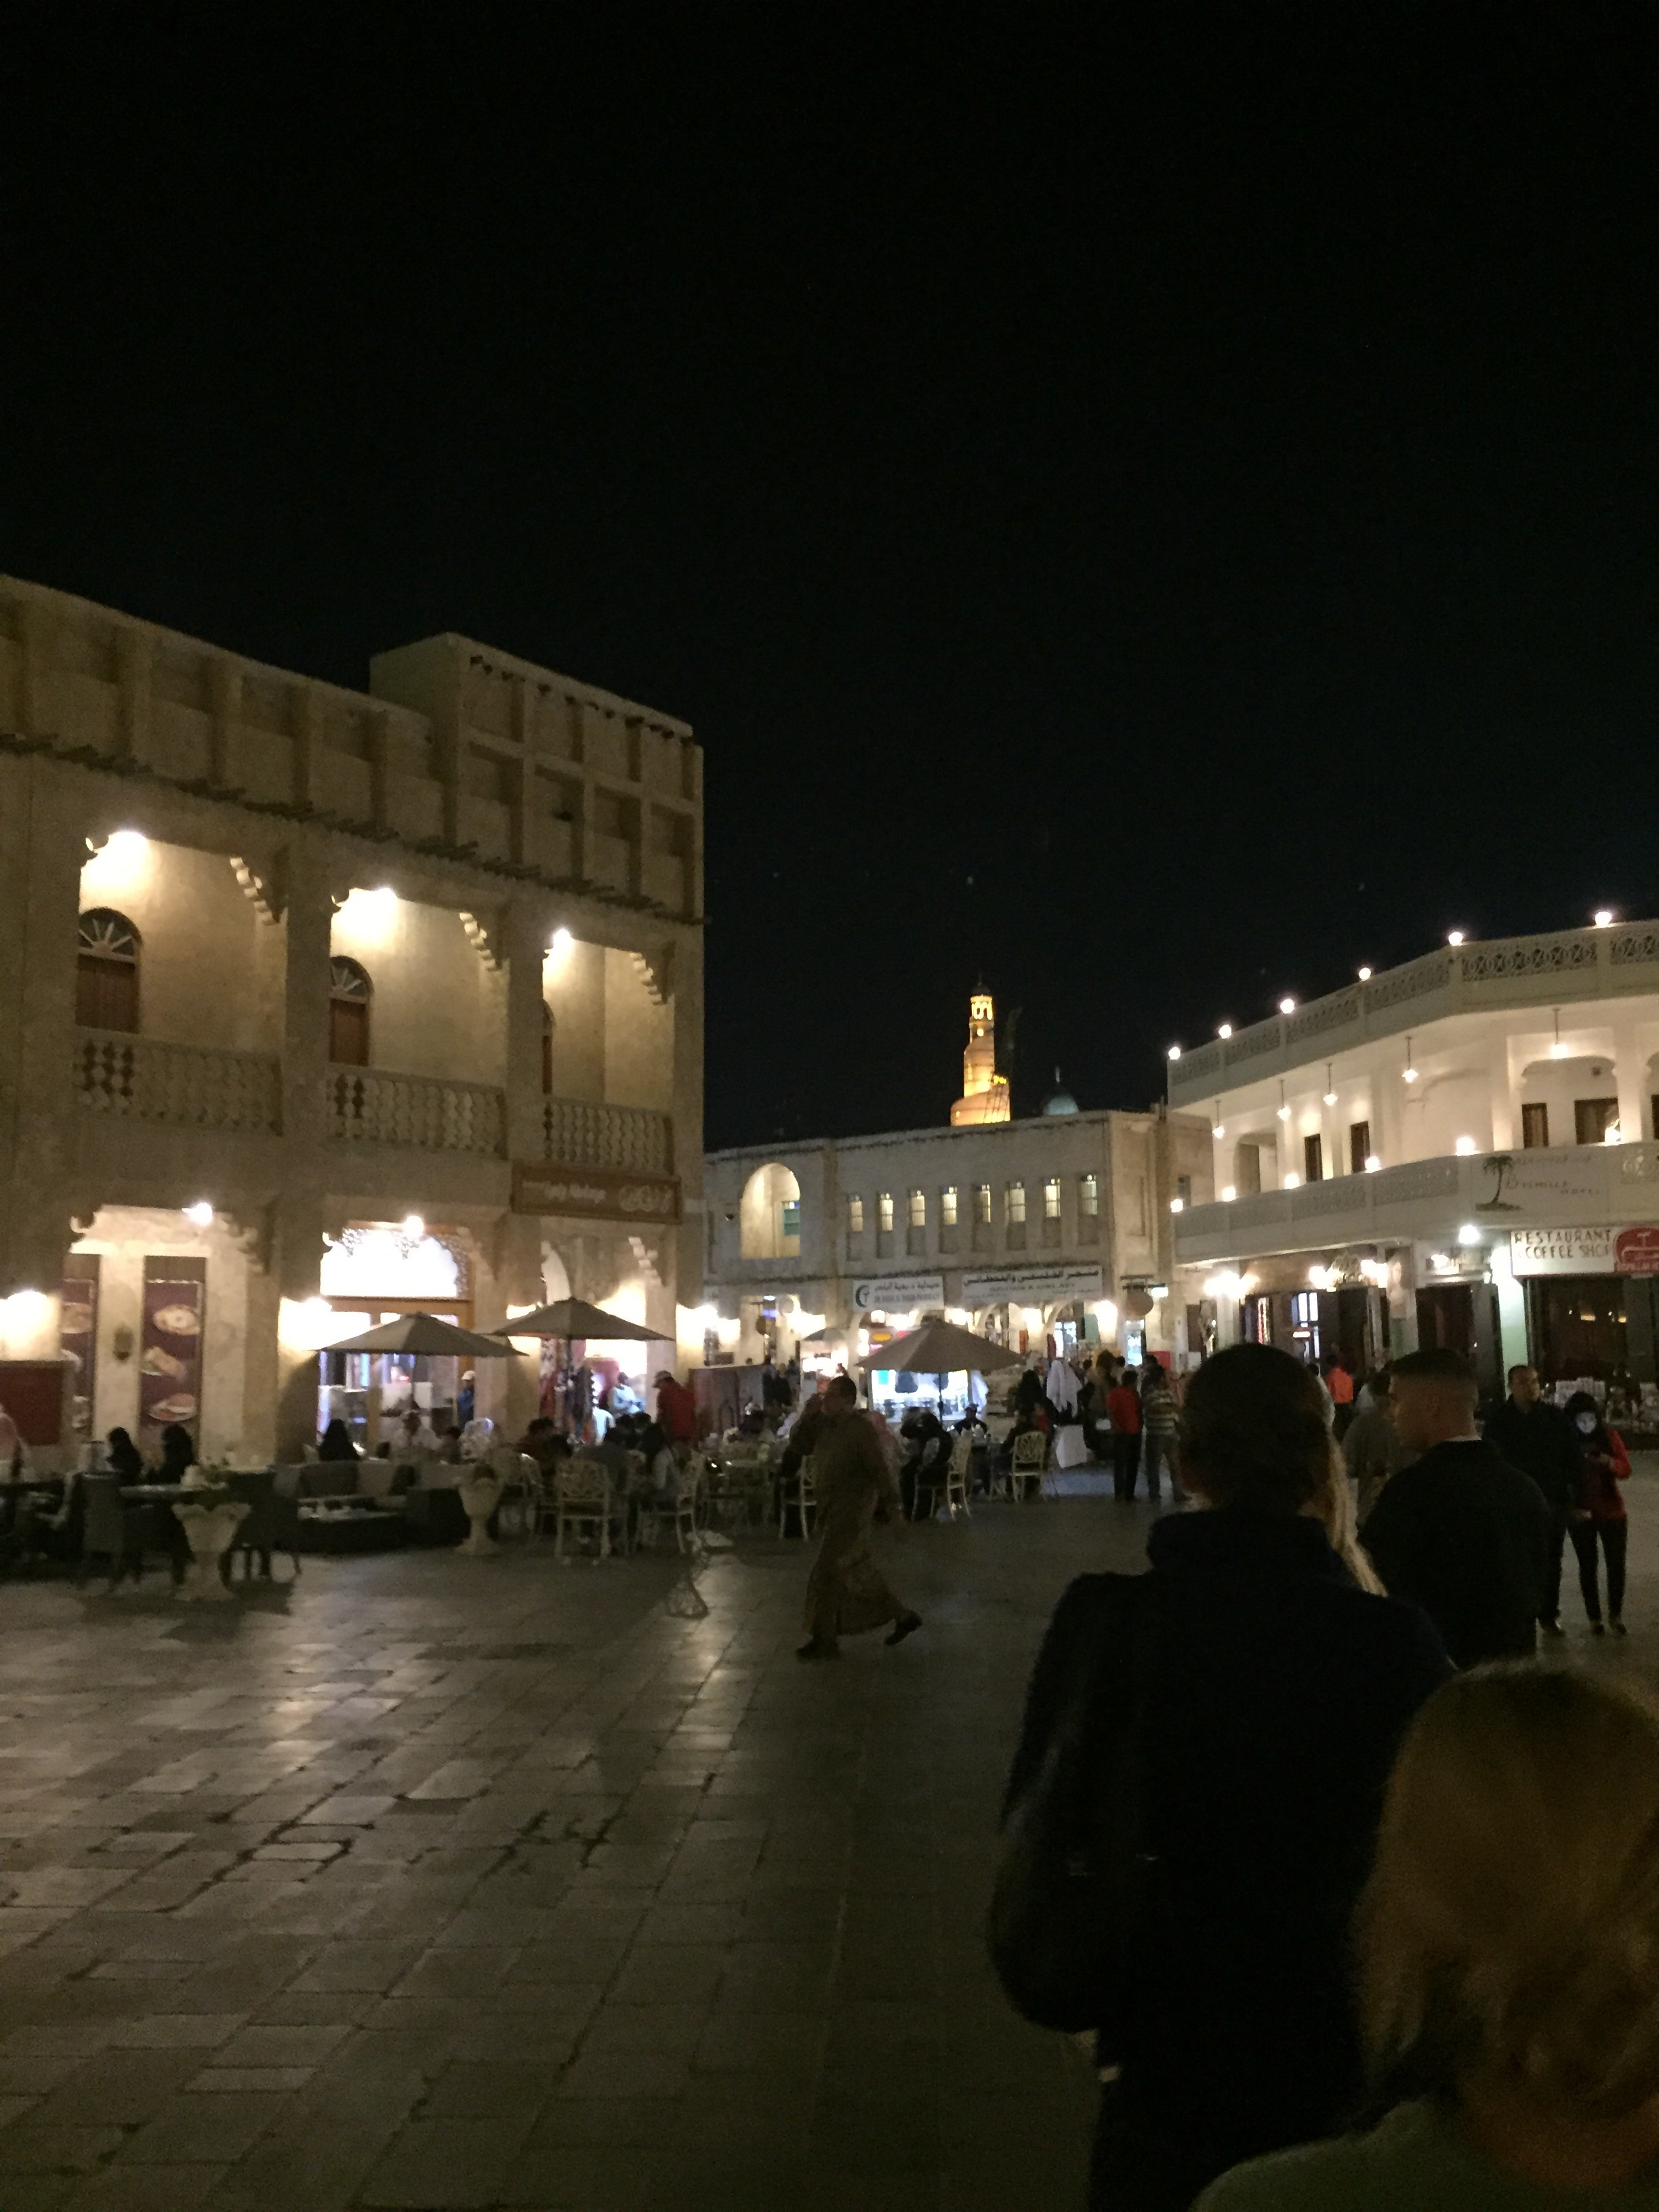 The Souq market area